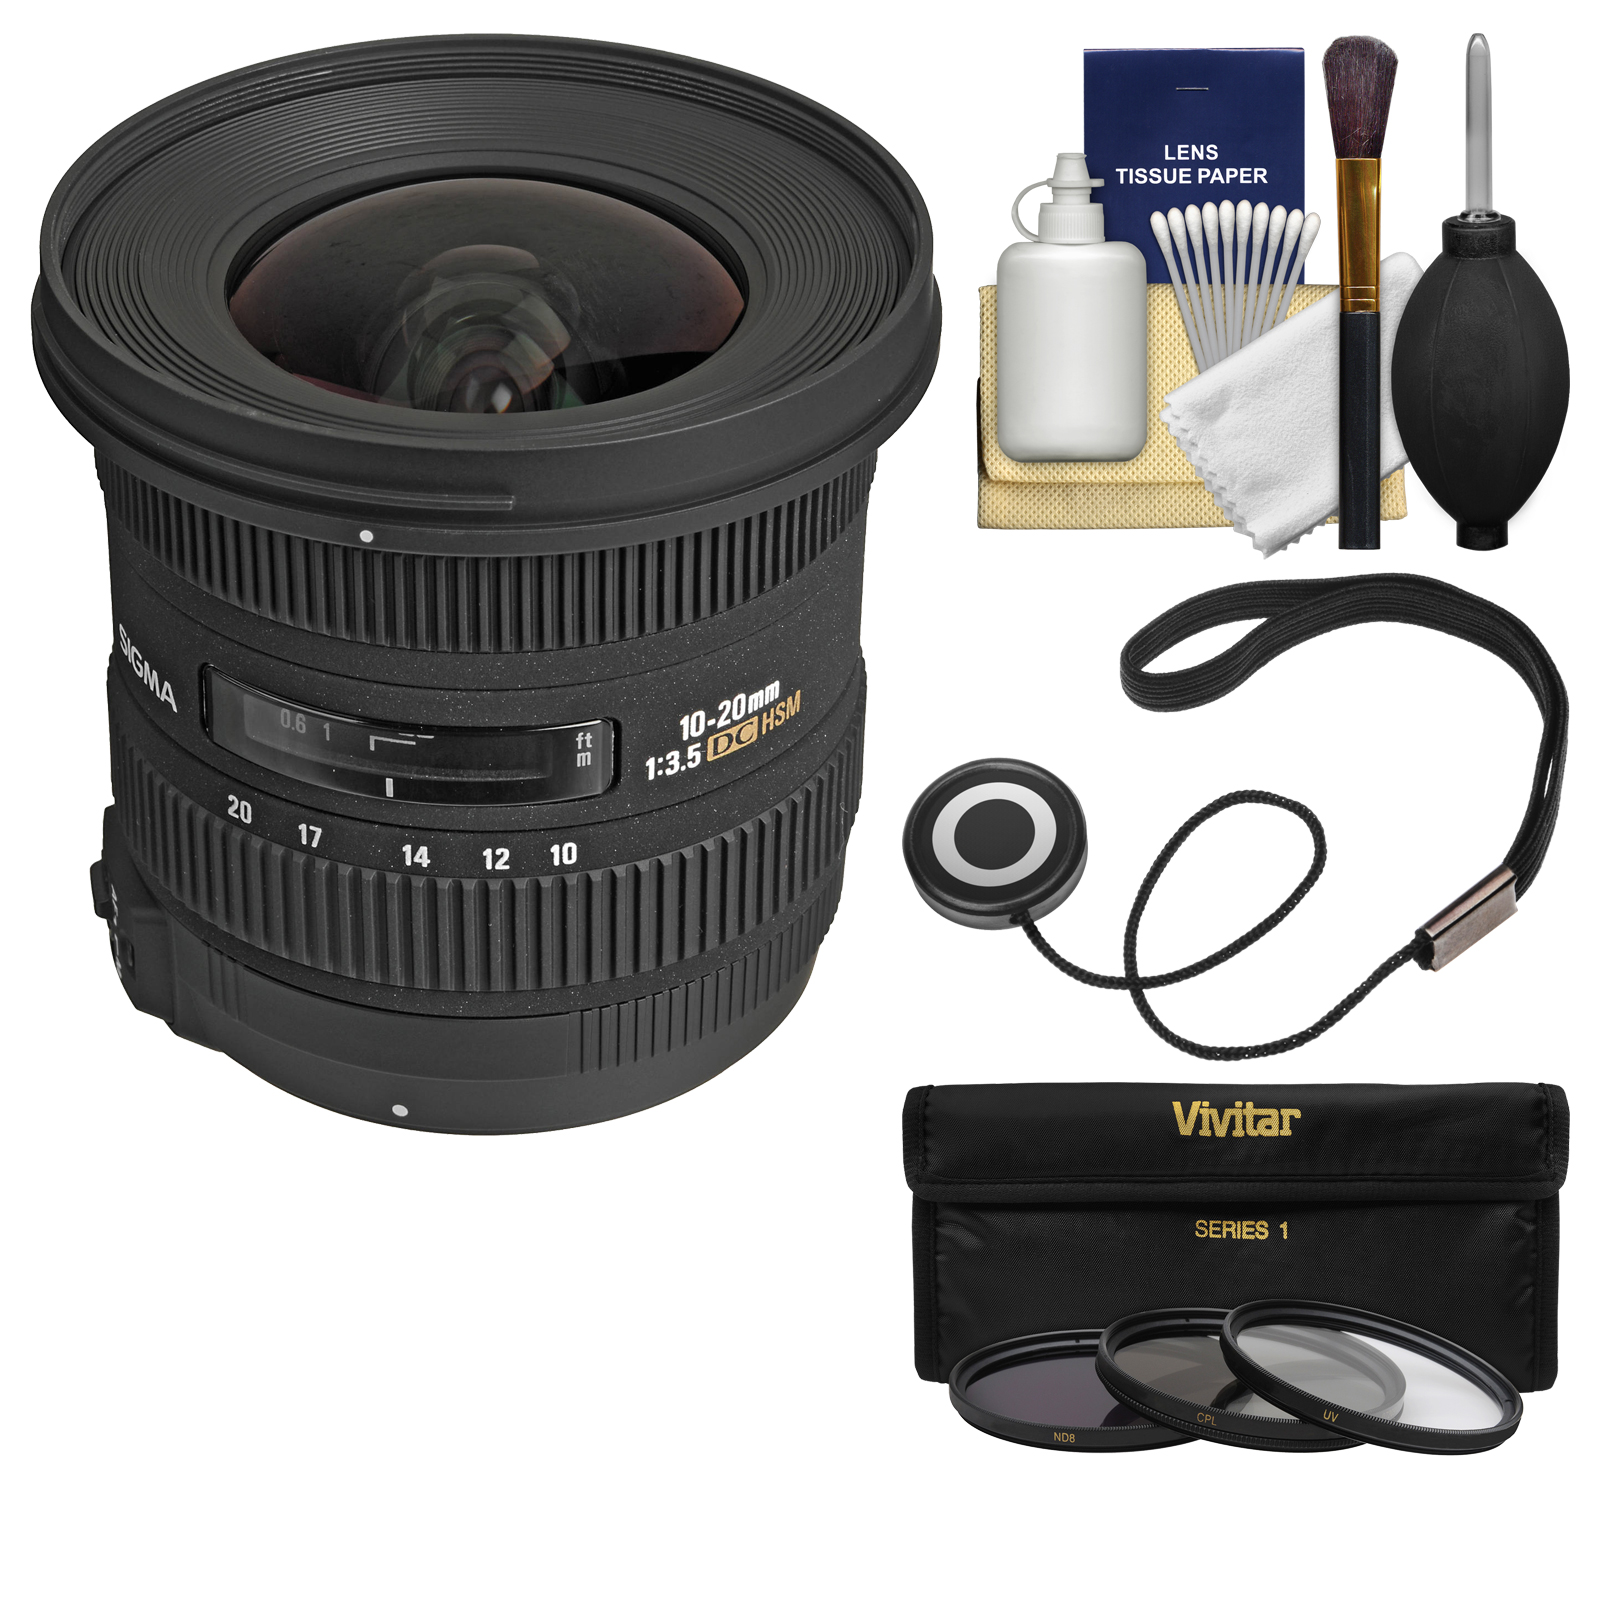 Sigma 10-20mm f/3.5 EX DC HSM Zoom Lens with 3 Filters Kit for Nikon D3200, D3300, D5300, D5500, D7100, D7200, D610, D750, D810, D4s DSLR Cameras